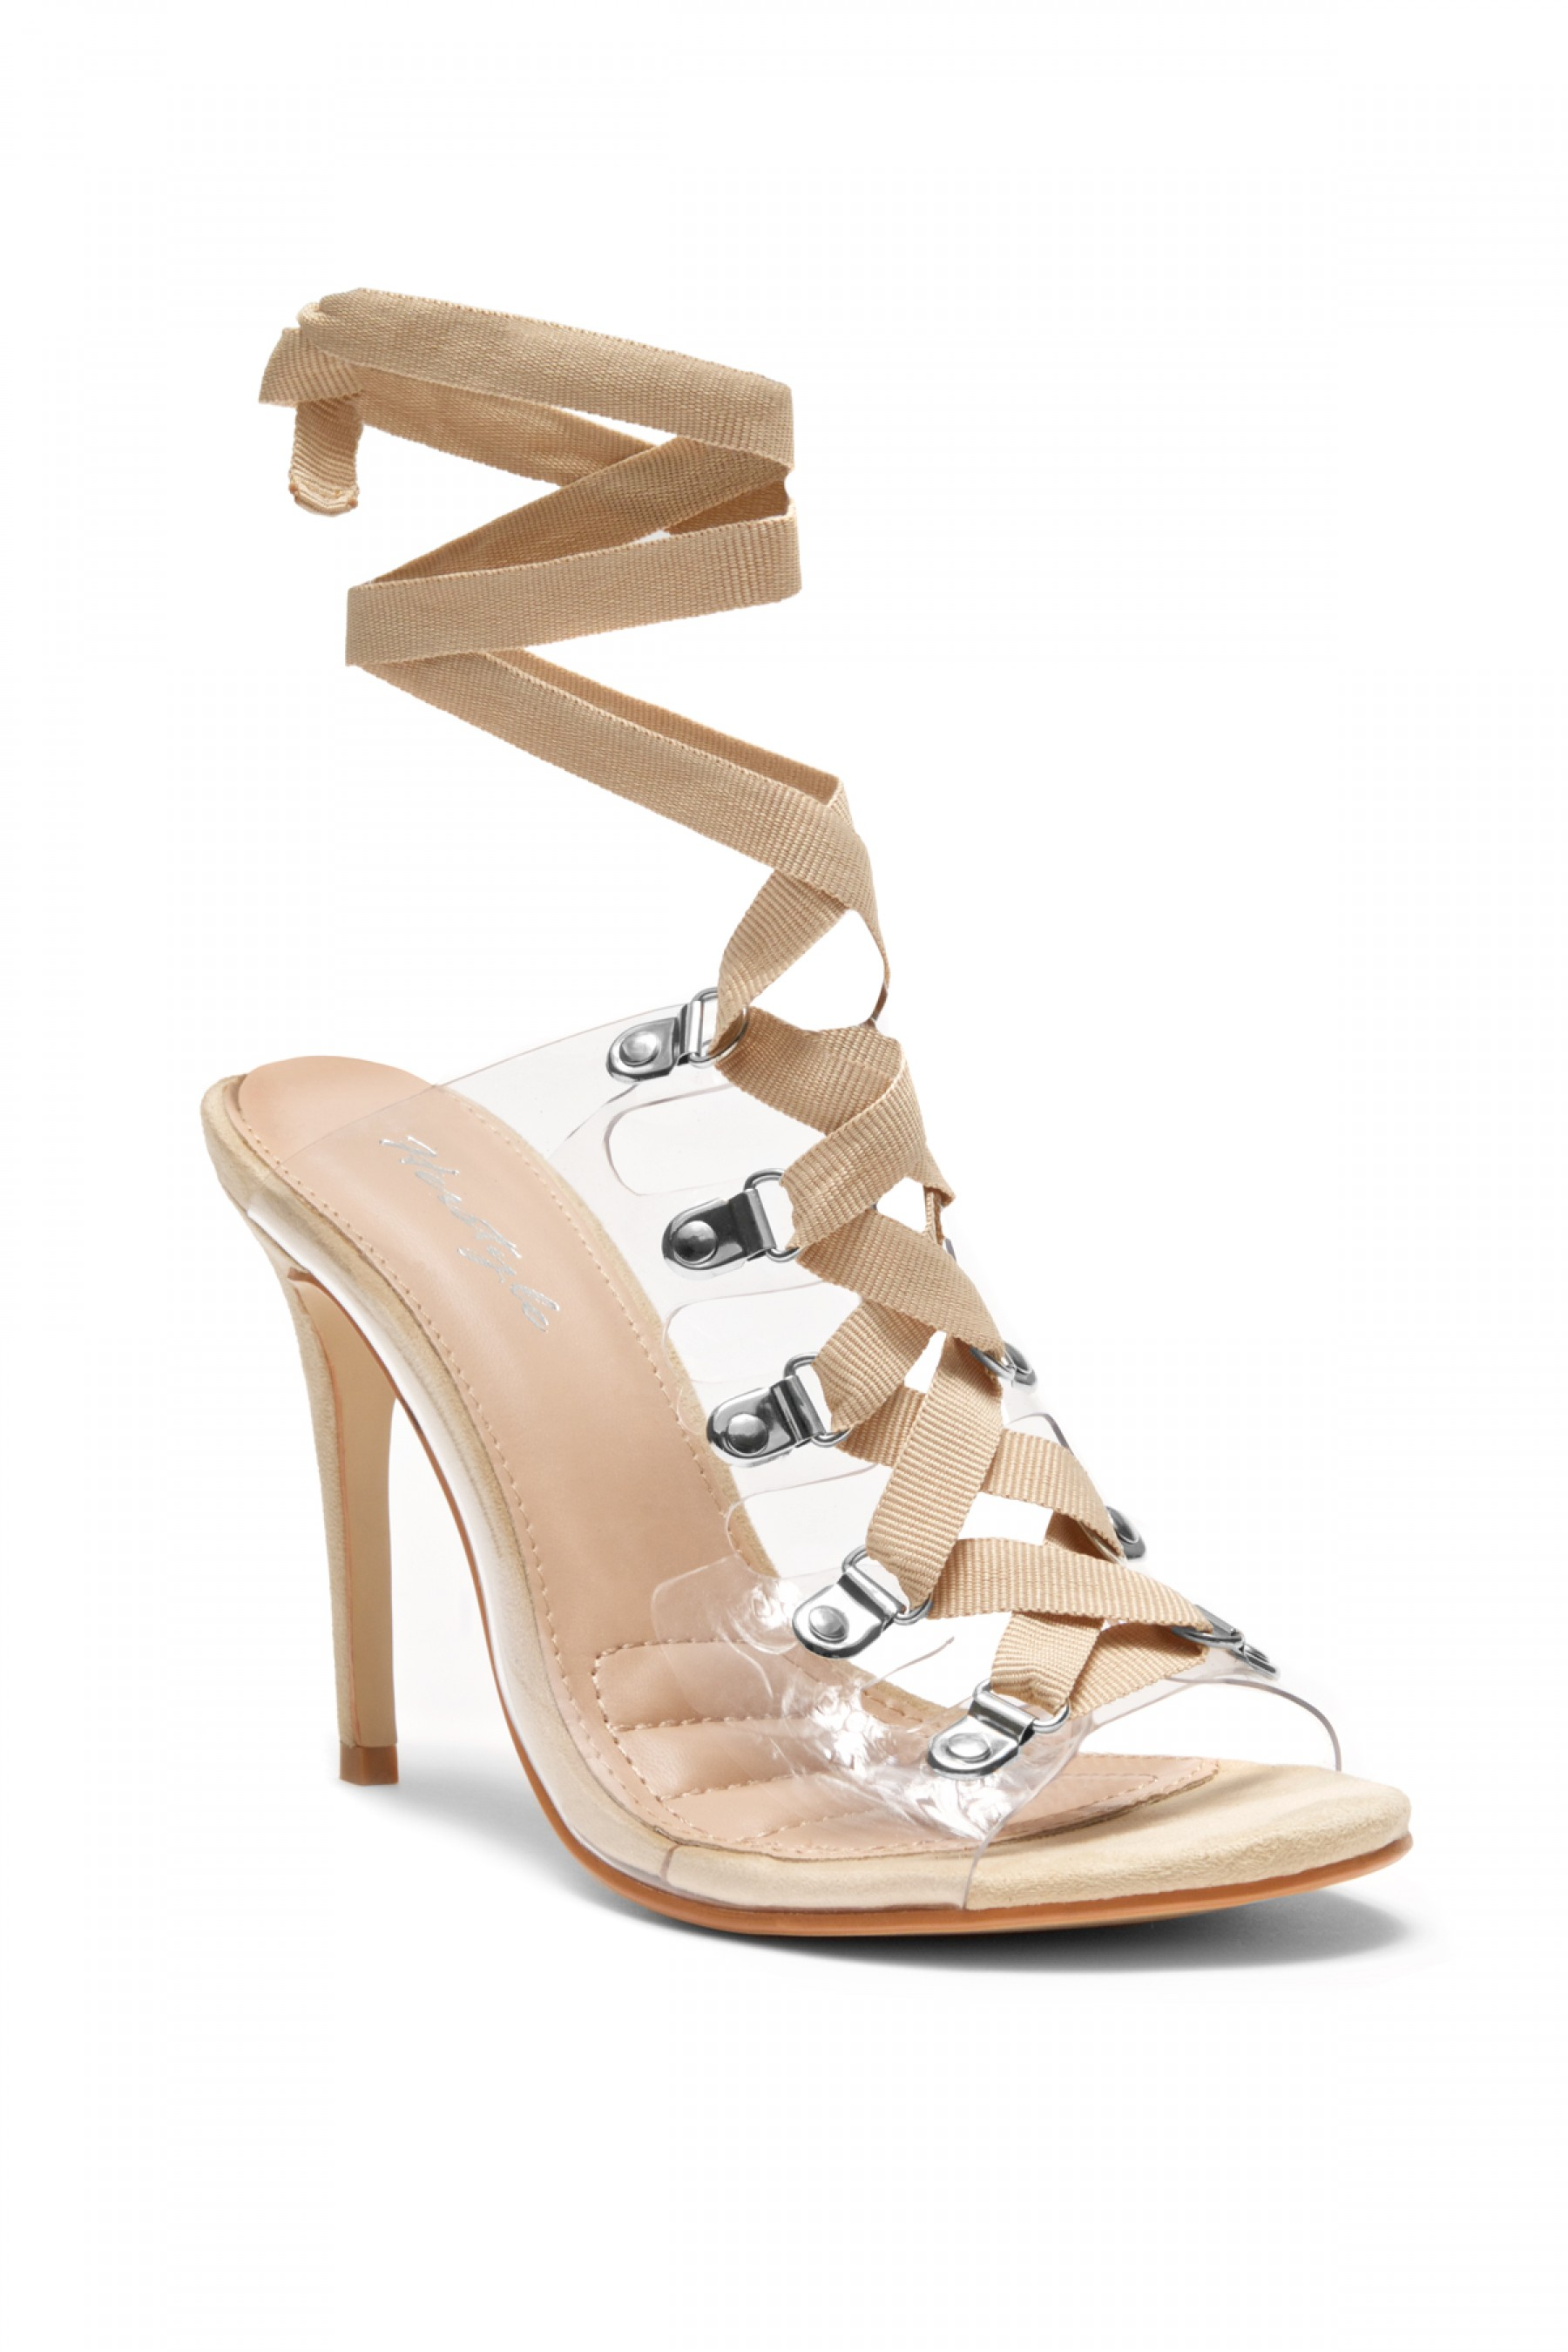 HerStyle Louisa stiletto heel, front lace-up, Lucite details (Clear Nude)